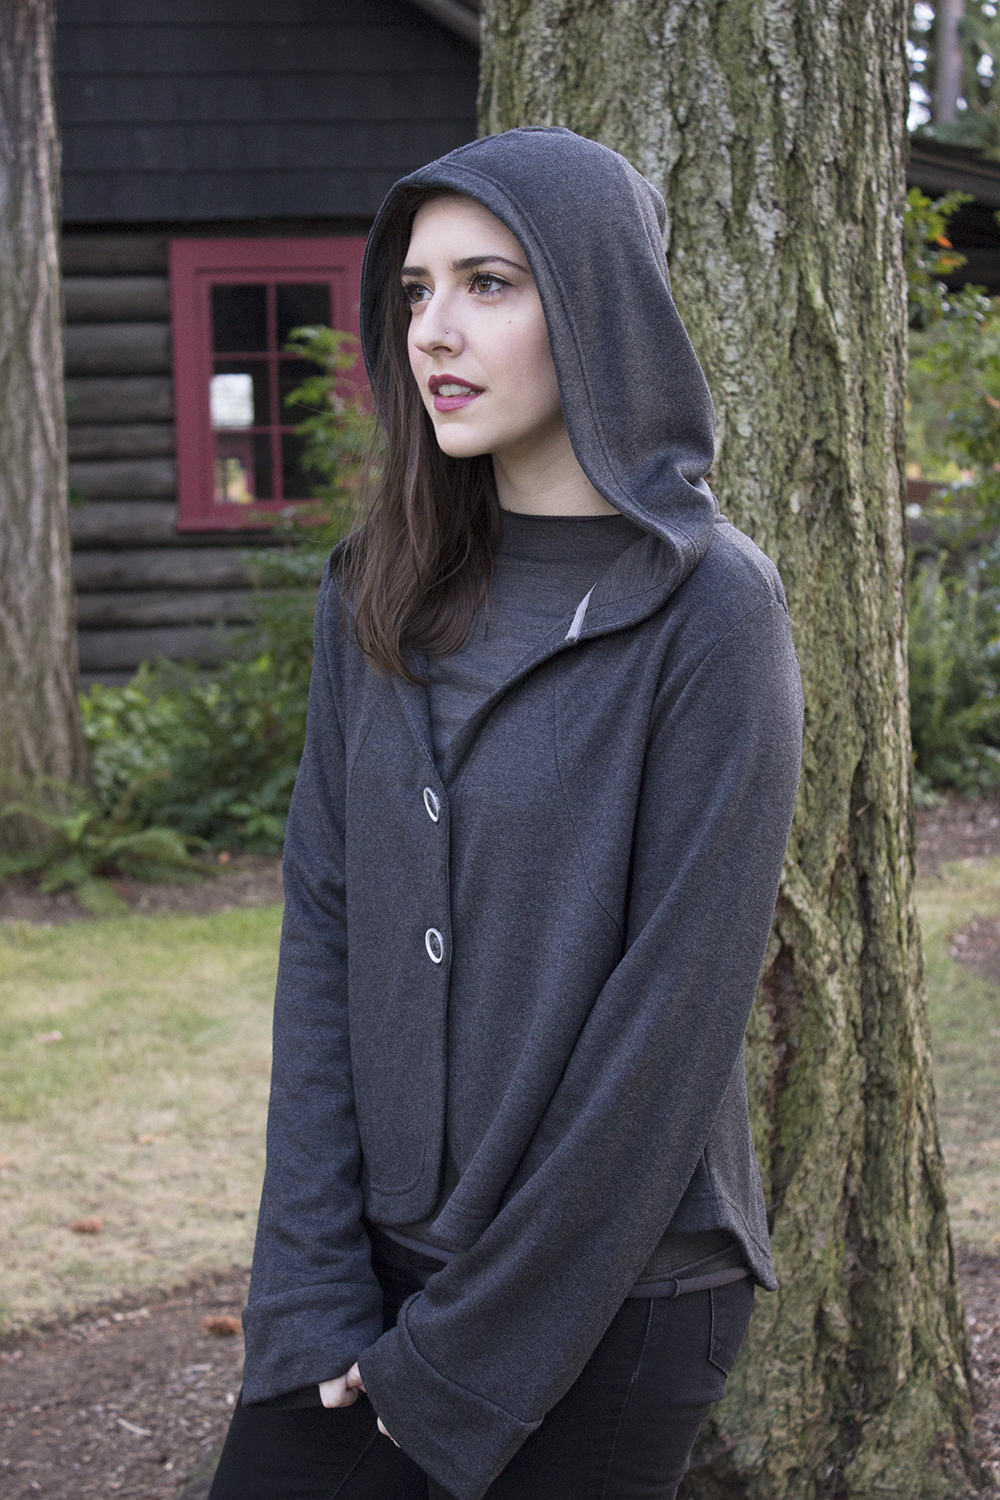 Buki Hometown Hoodie and Shanna Tee Travel Outfit Style and Cheek - Perfect Travel Outfit with Buki